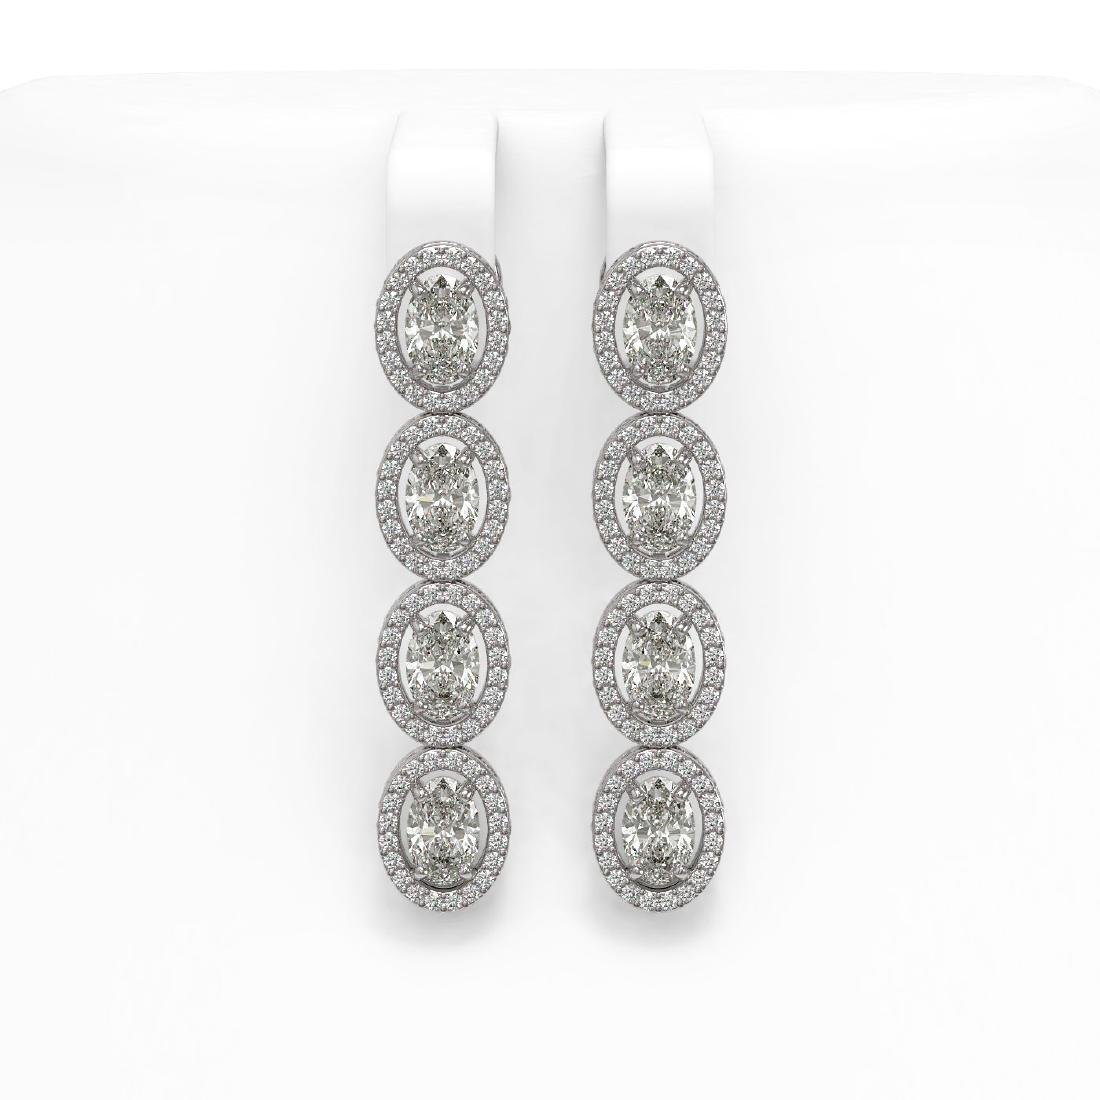 6.08 CTW Oval Diamond Designer Earrings 18K White Gold